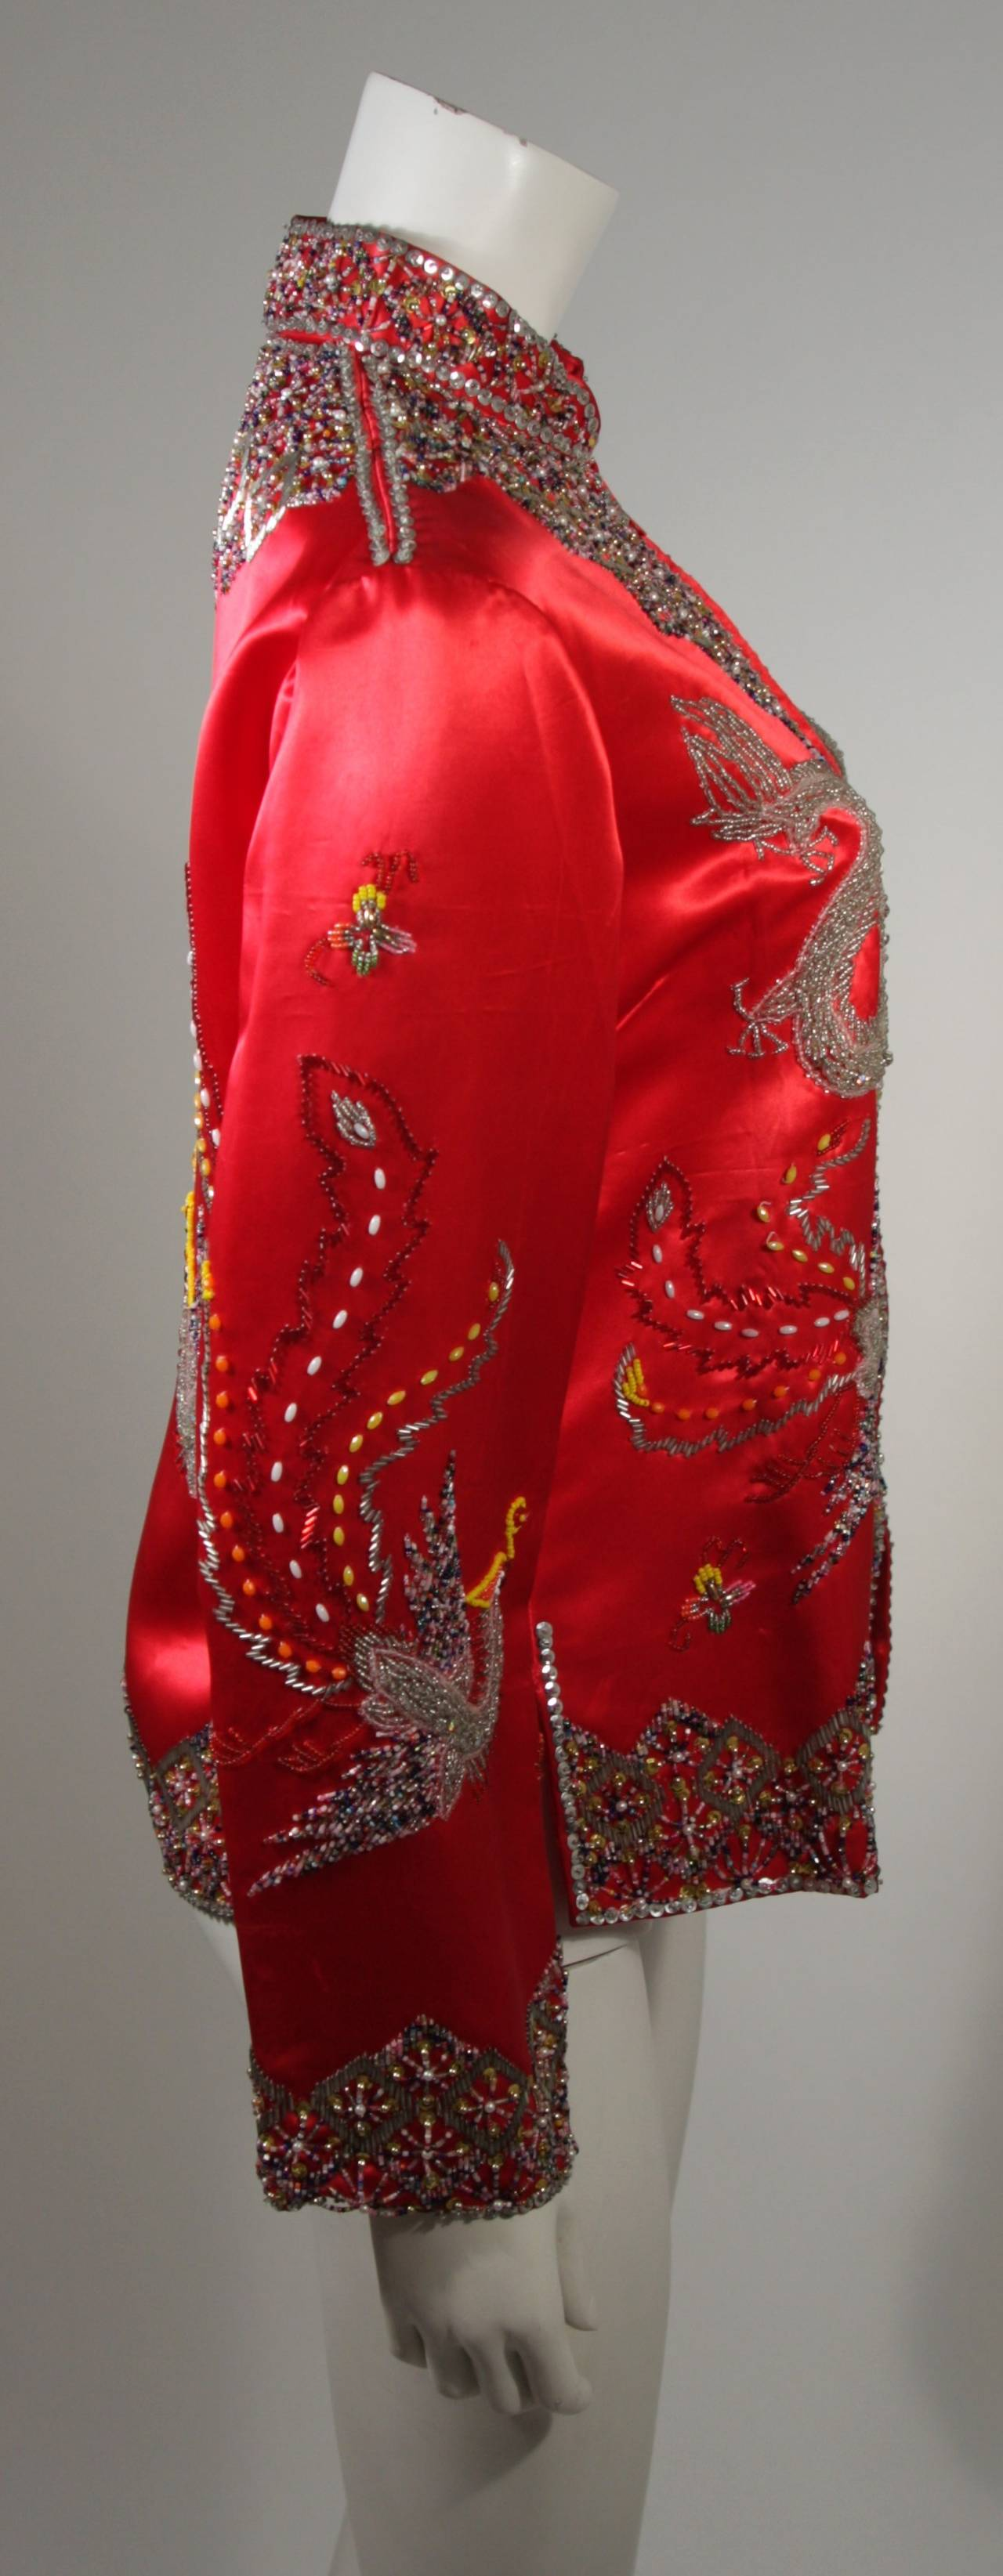 Women's Dynasty For Neiman Marcus Red Silk Hand Beaded Sequined Dragon & Phoenix Jacket For Sale